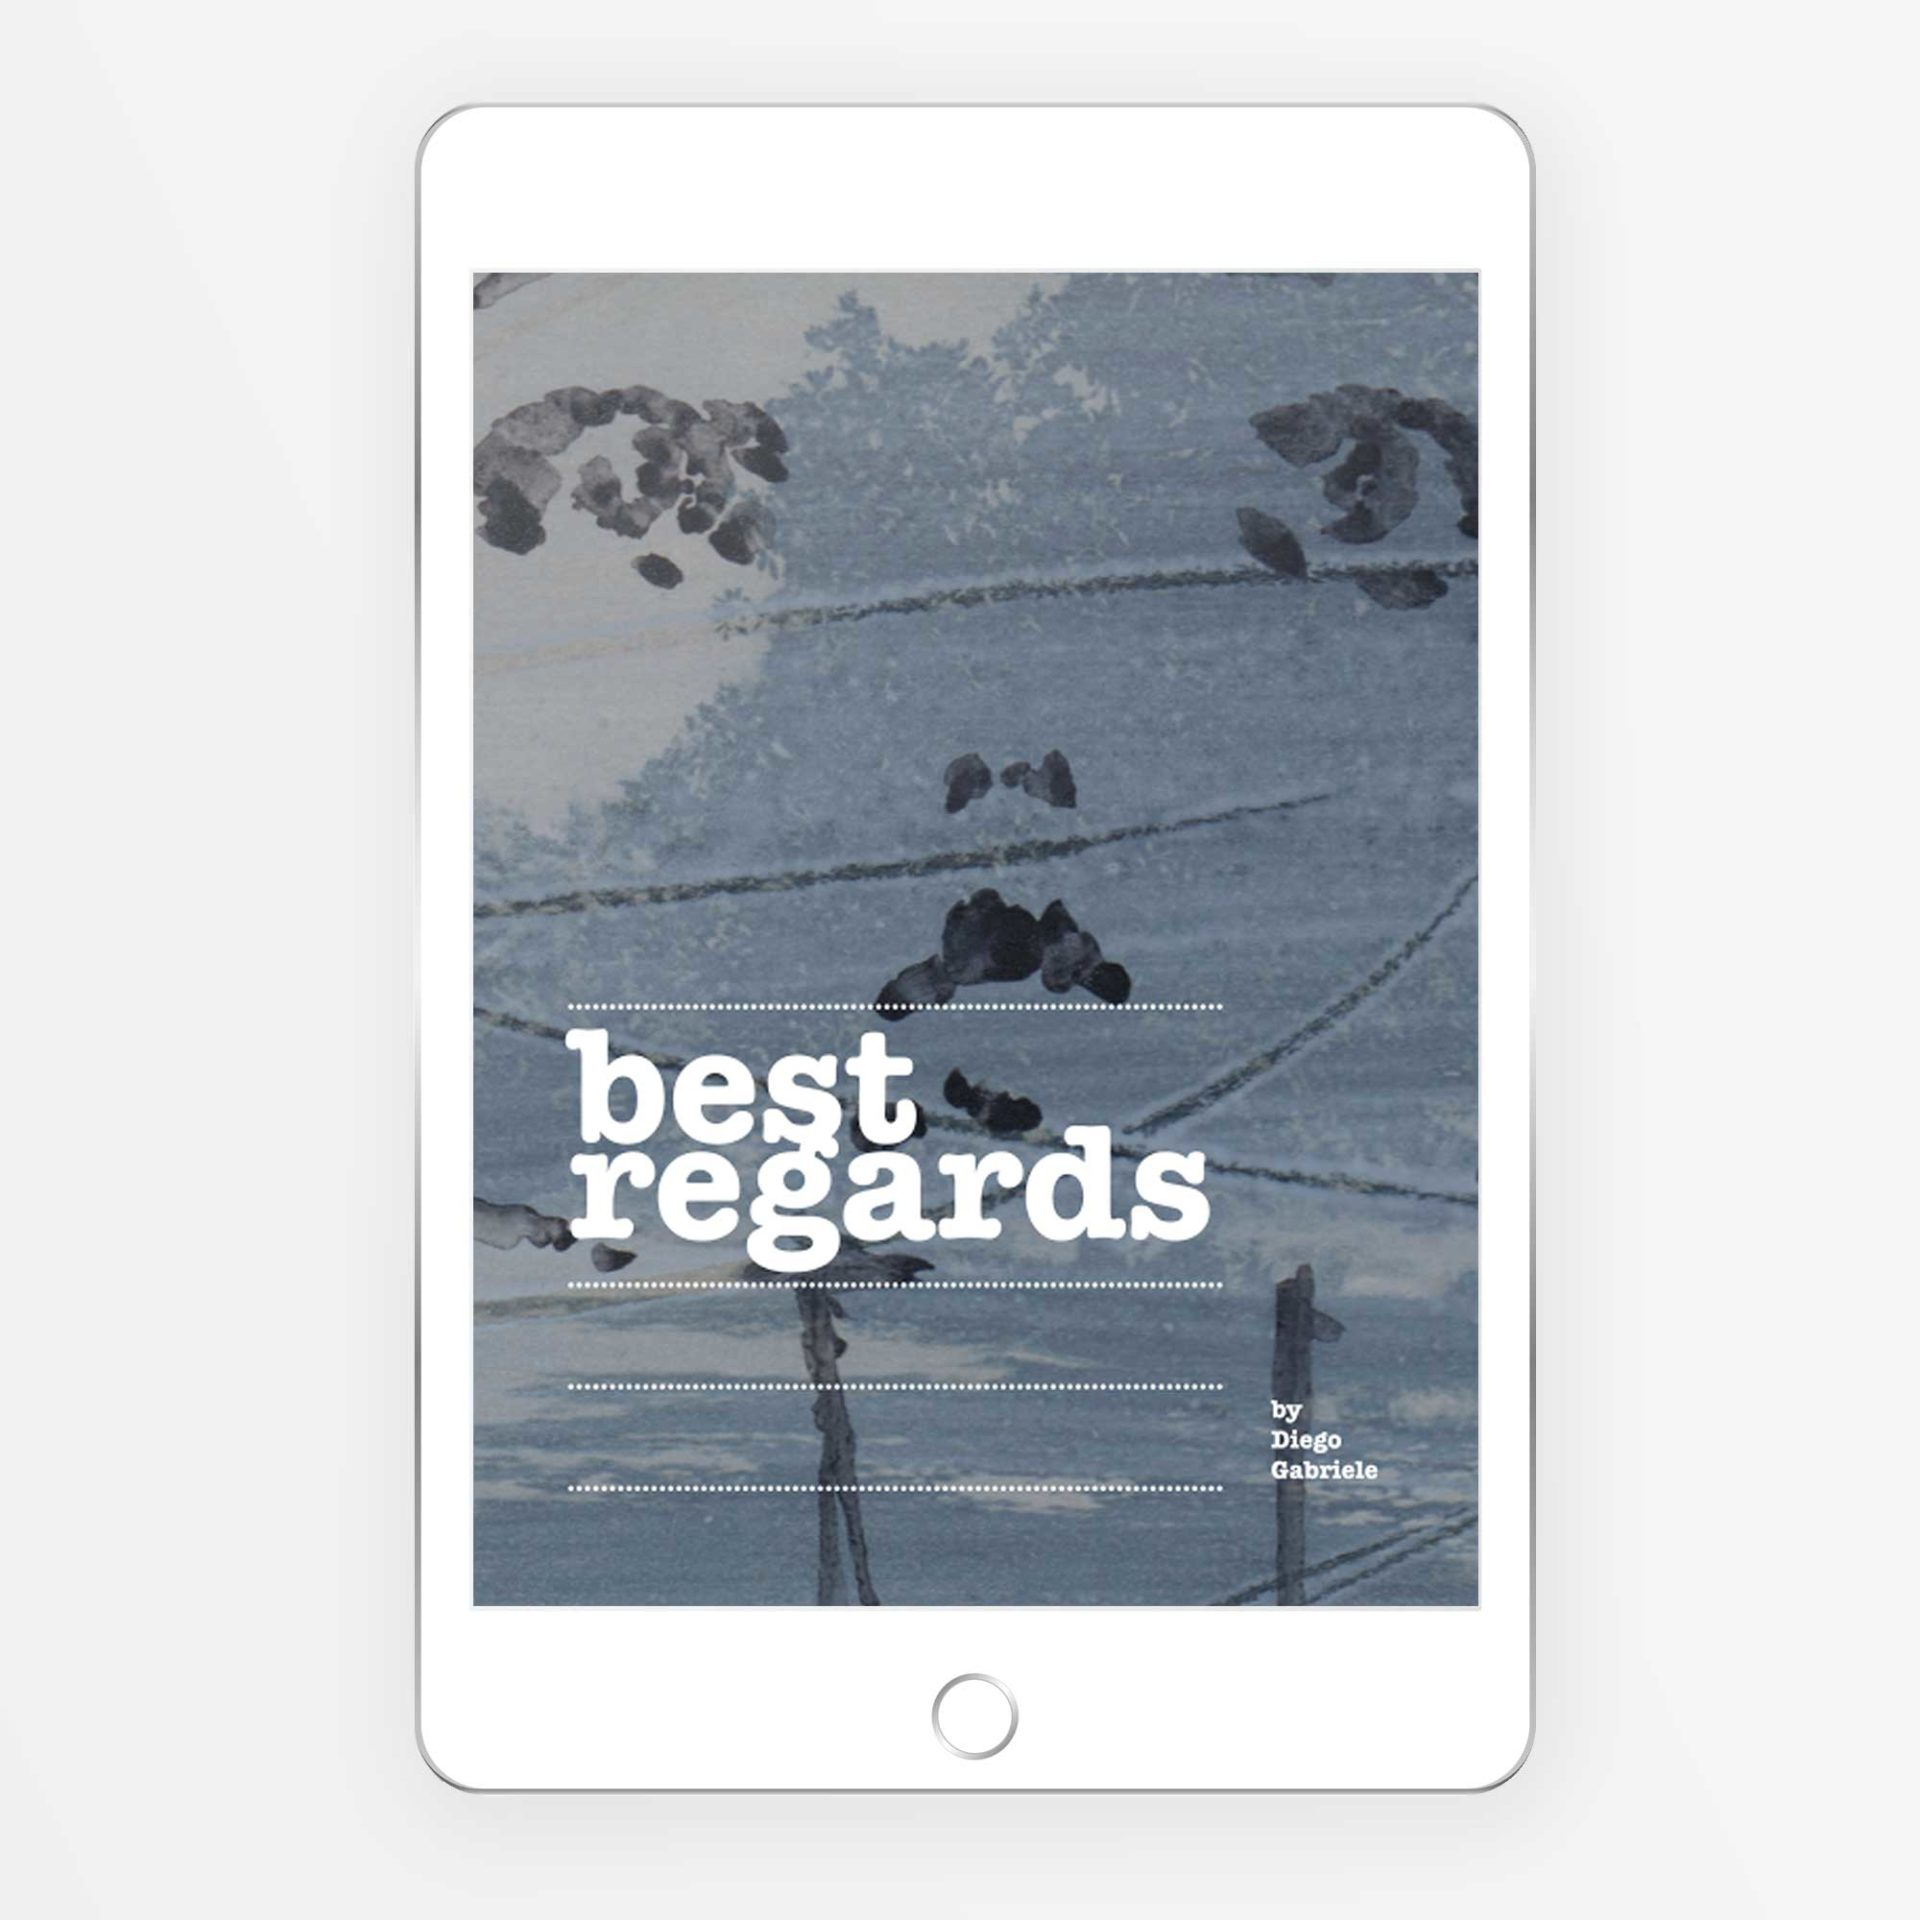 Best Regard eBook Illustrato di Diego gabriele